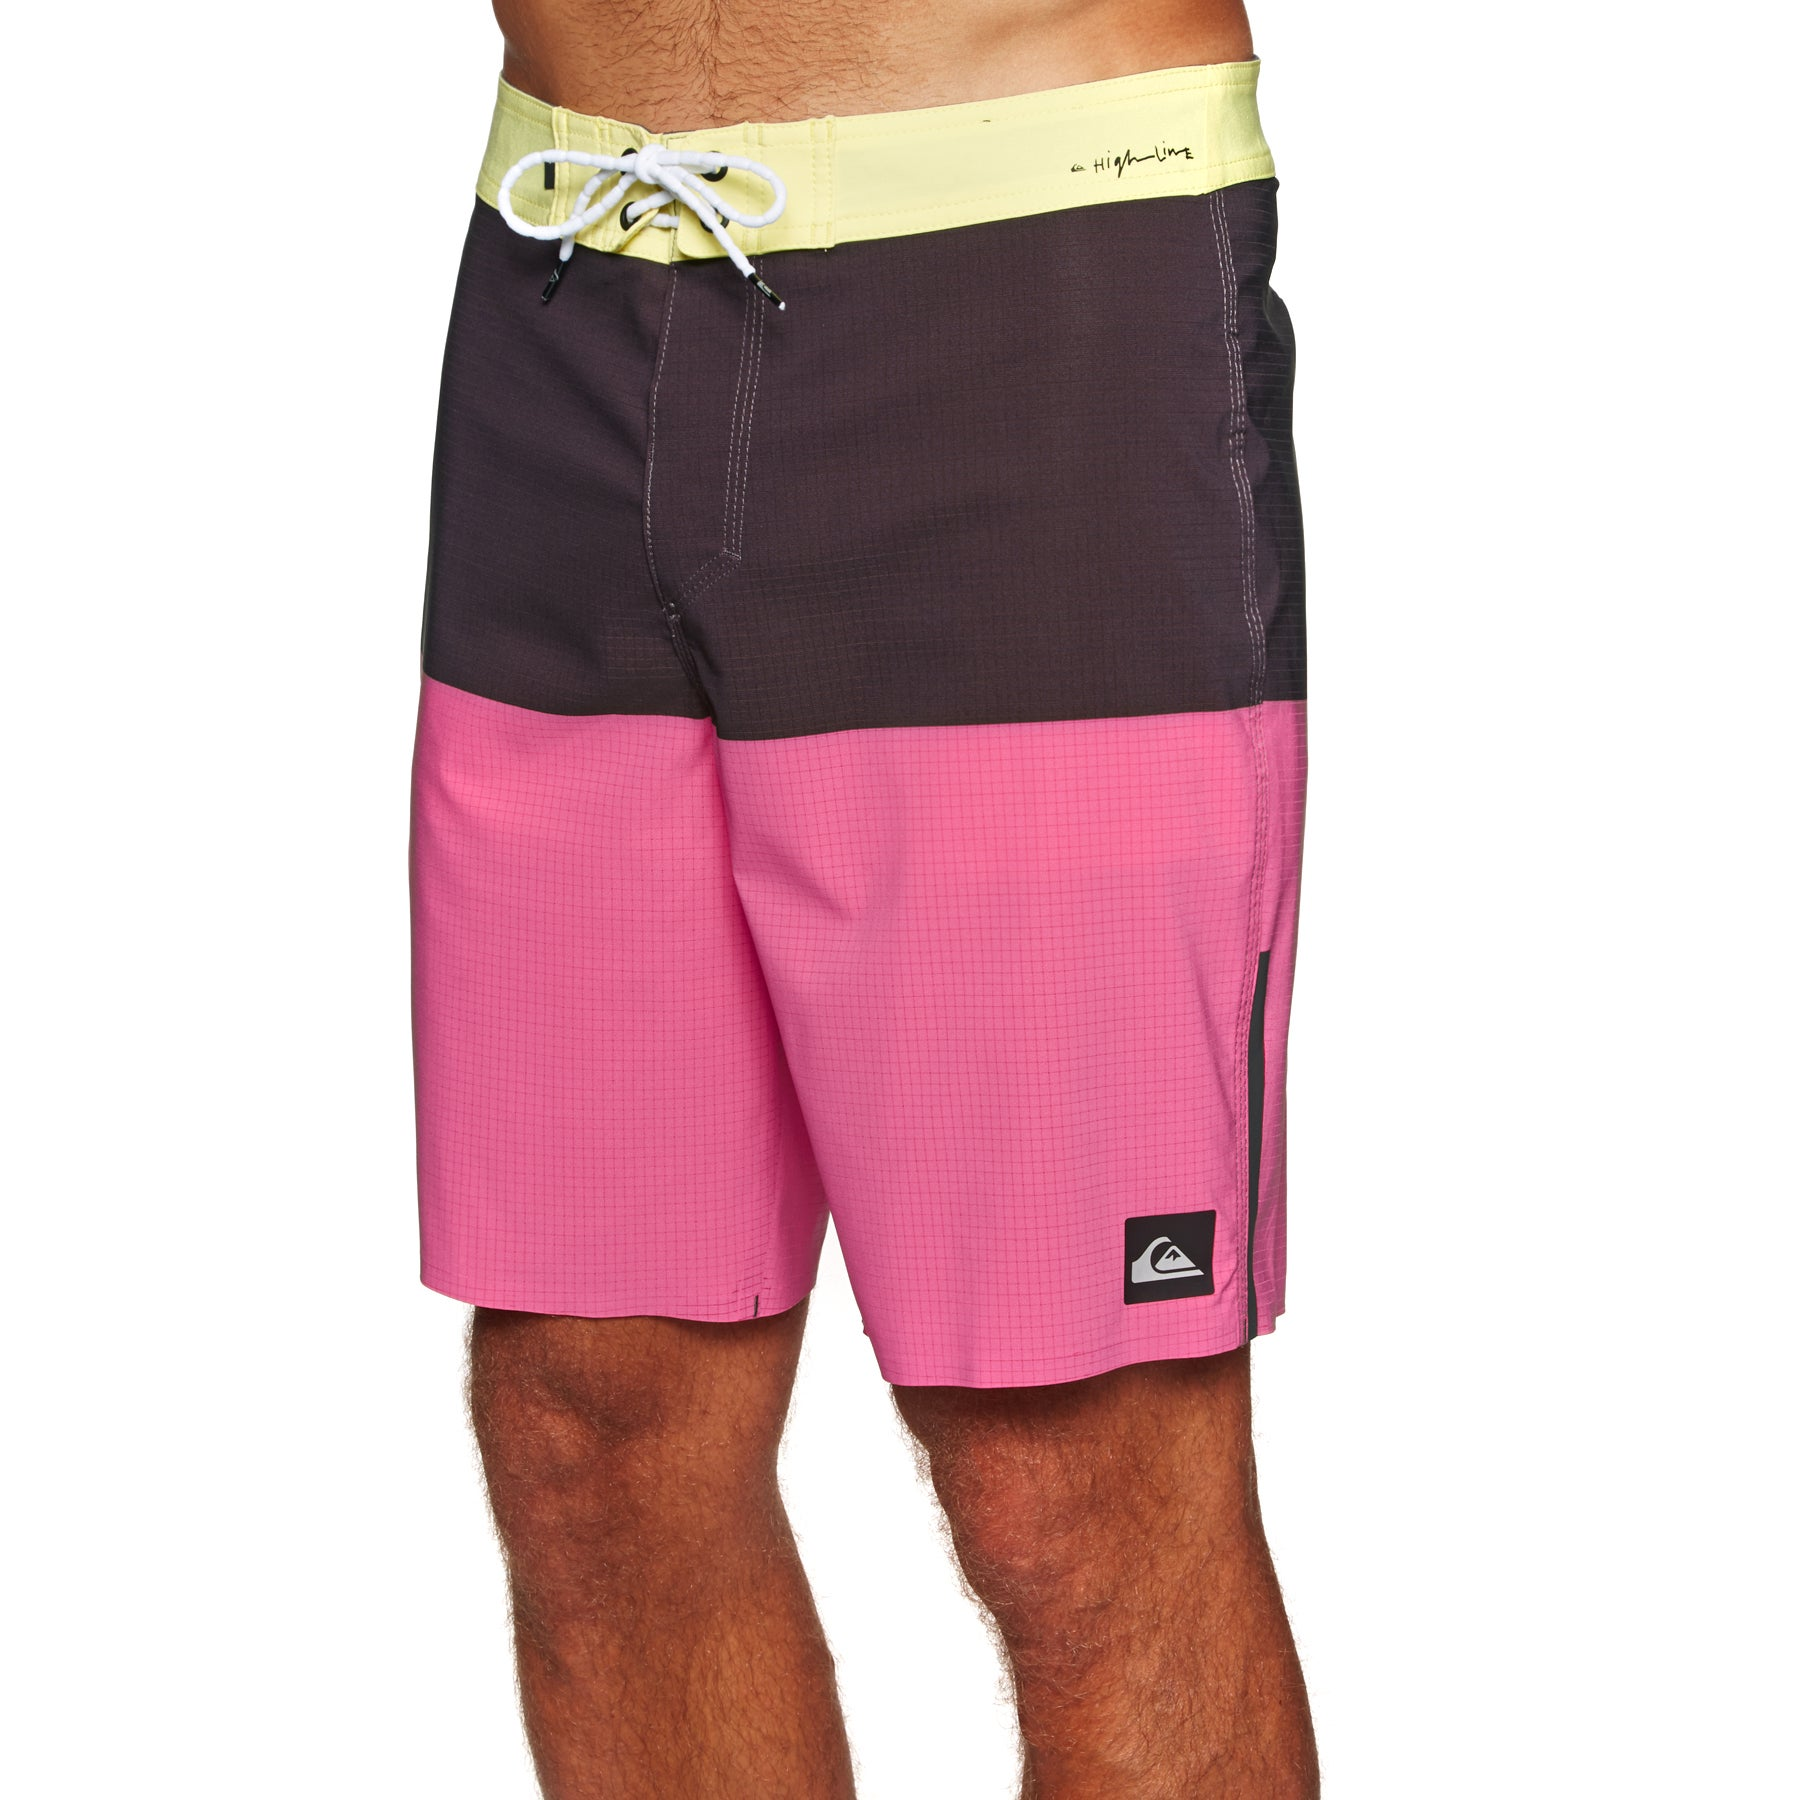 f228a1e8fb Quiksilver Highline Division Pro 19in Boardshorts Yellow All Sizes